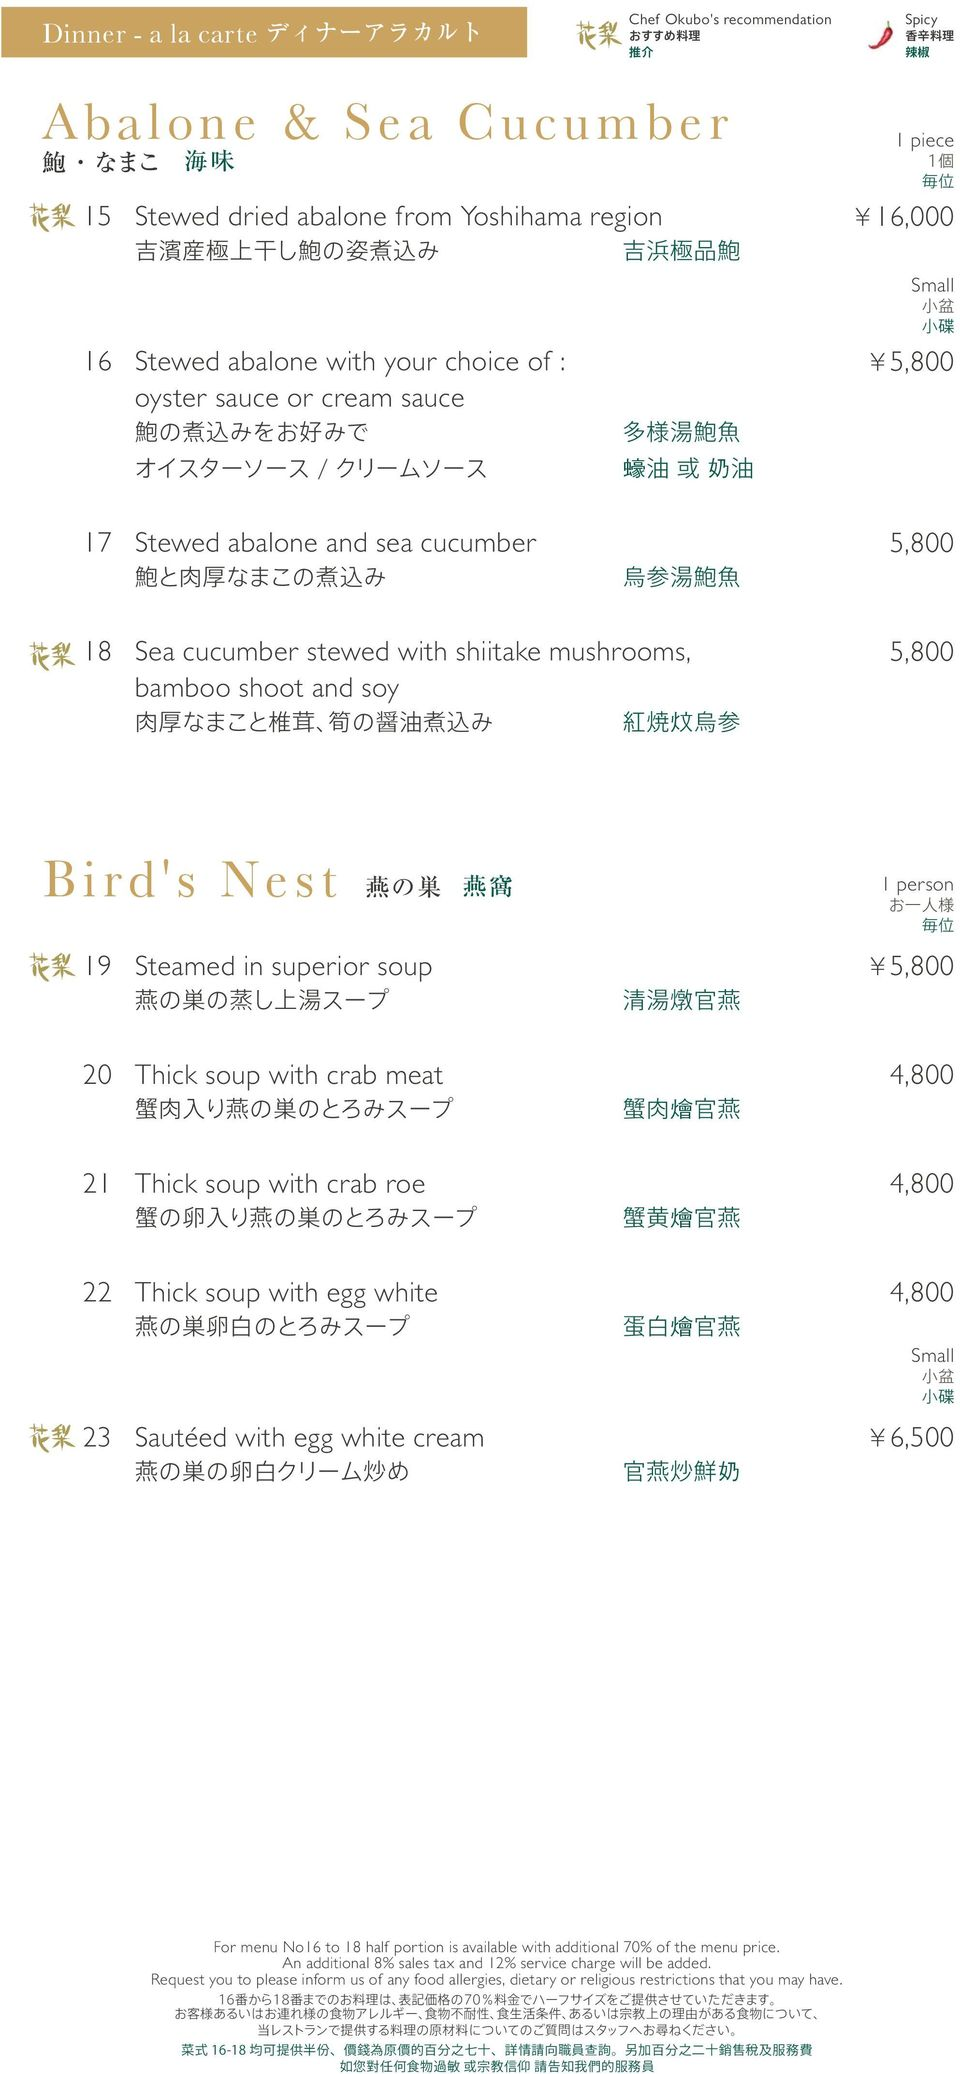 bamboo shoot and soy 炆 5,800 Bird's Nest 1 person 19 Steamed in superior soup 5,800 20 Thick soup with crab meat 燴 4,800 21 Thick soup with crab roe 燴 4,800